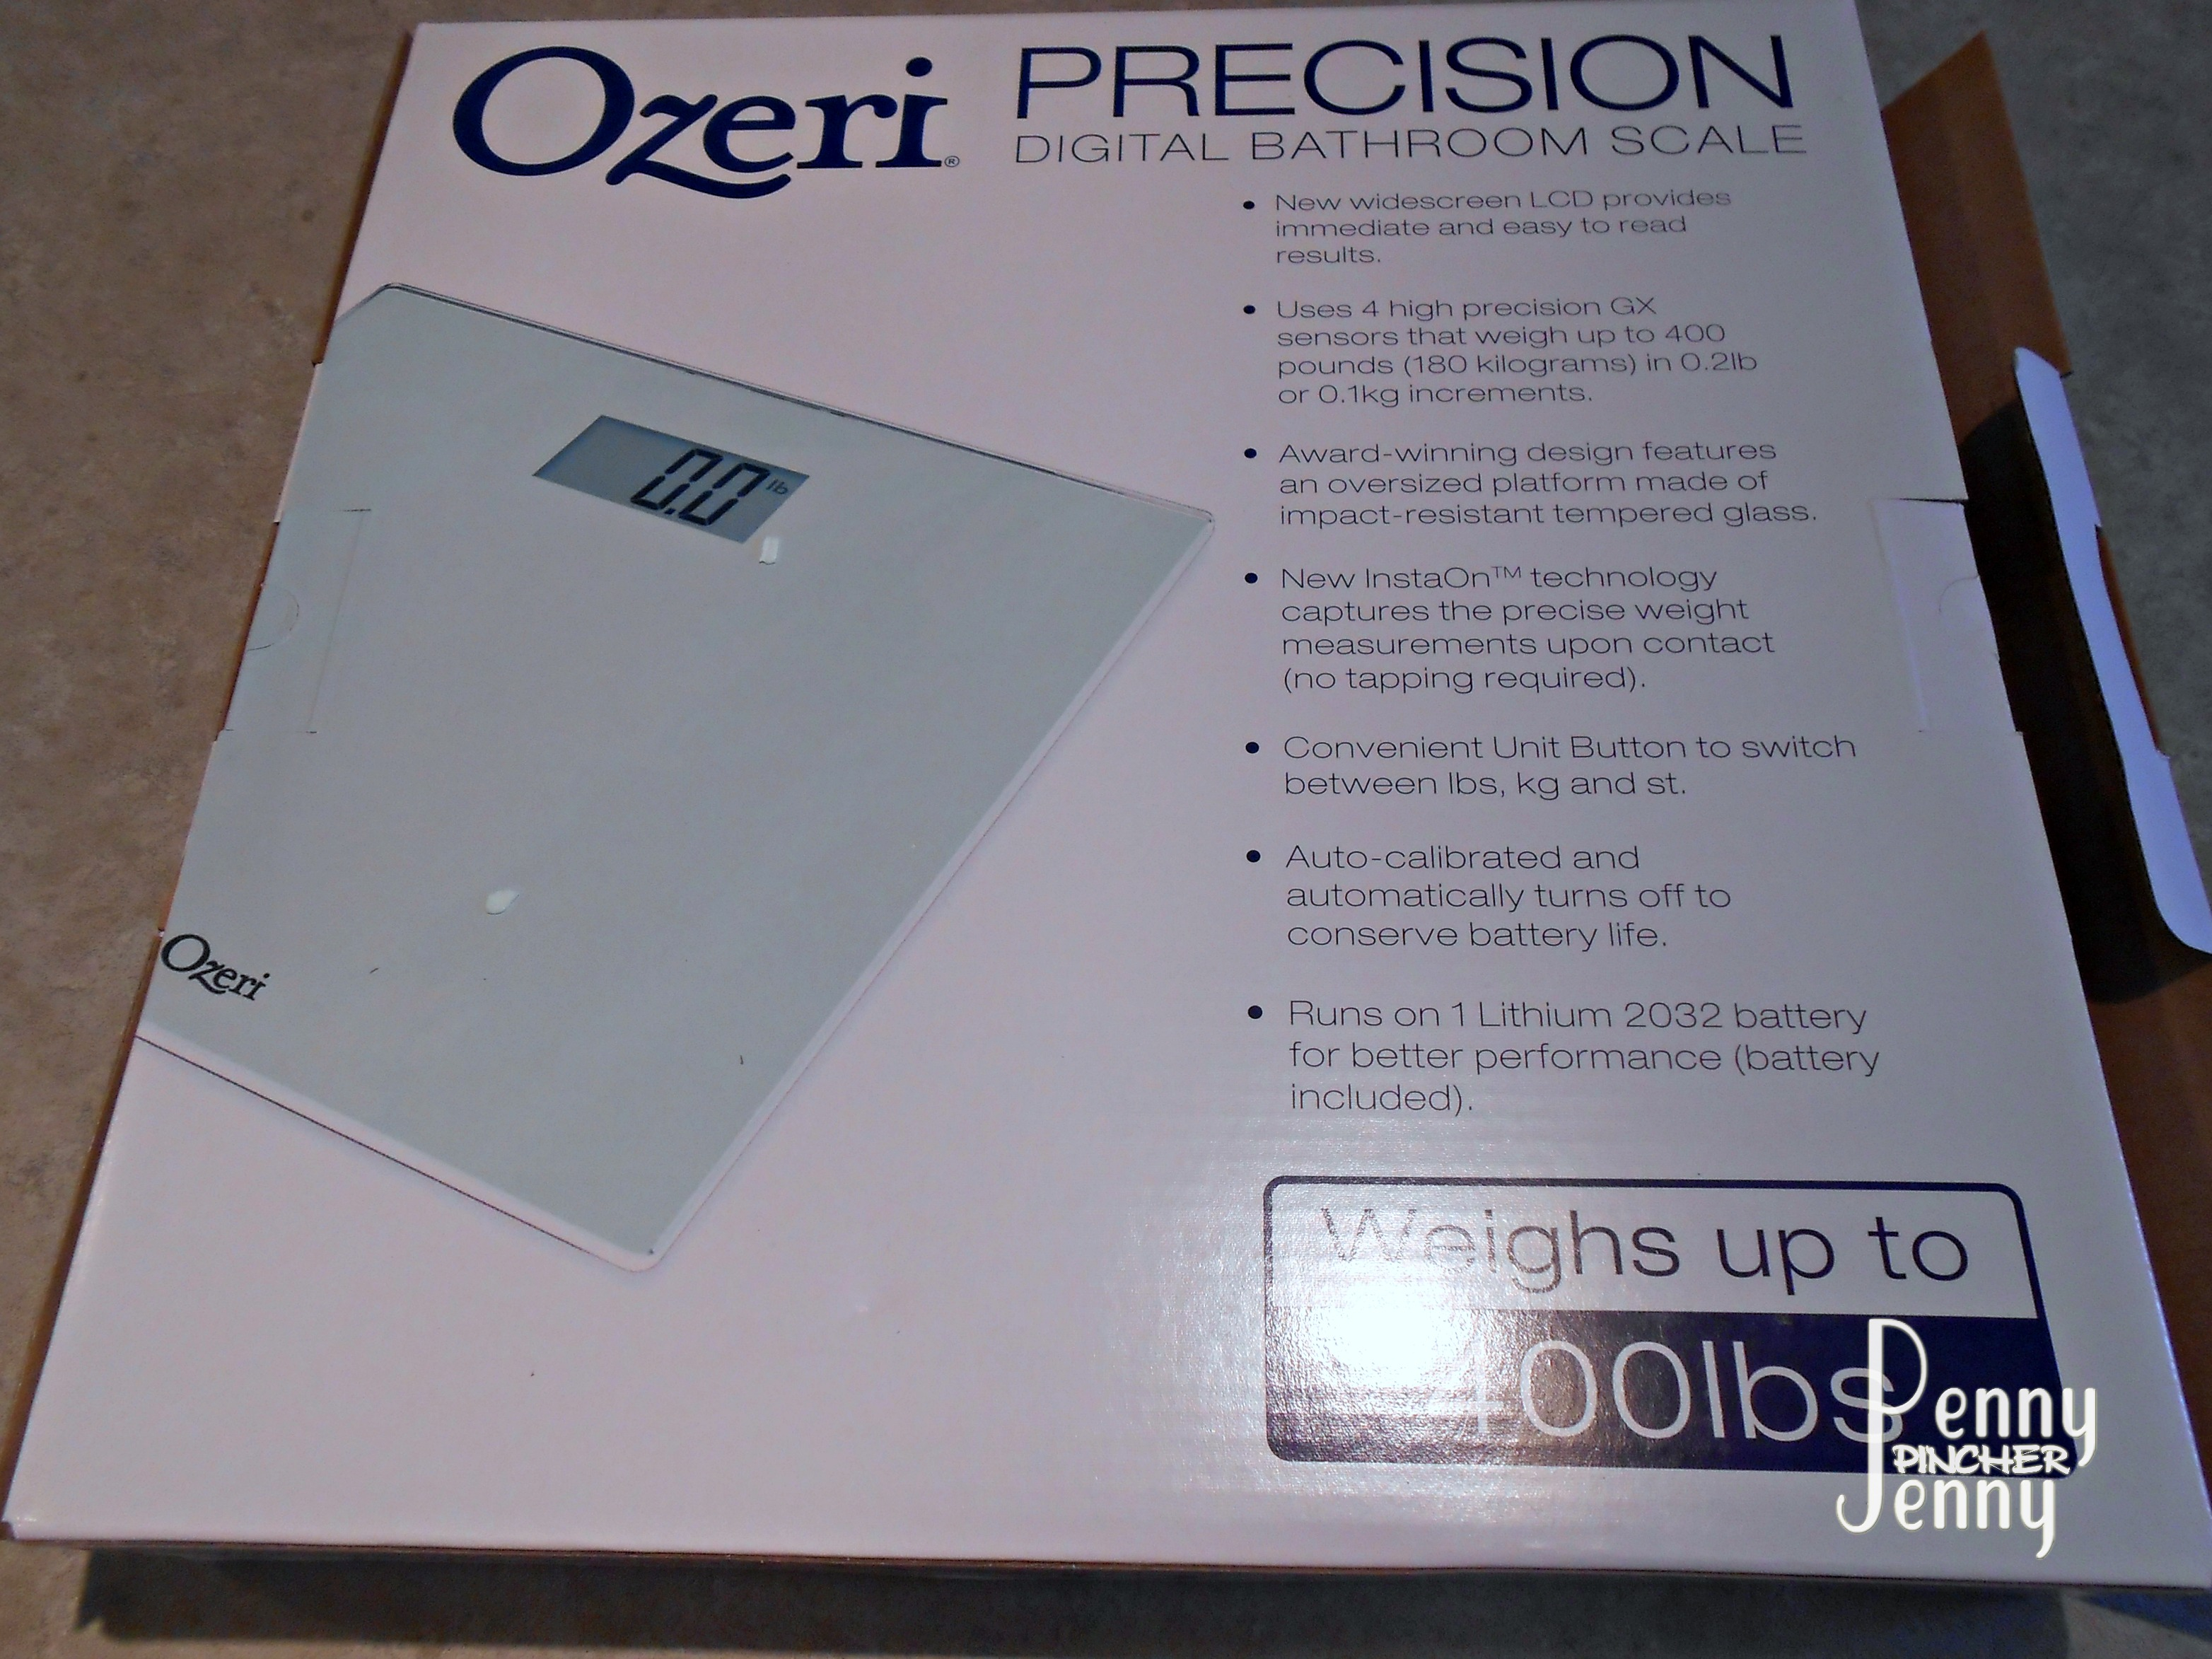 Calibrate digital bathroom scale - Ozeri Precision Digital Bath Scale